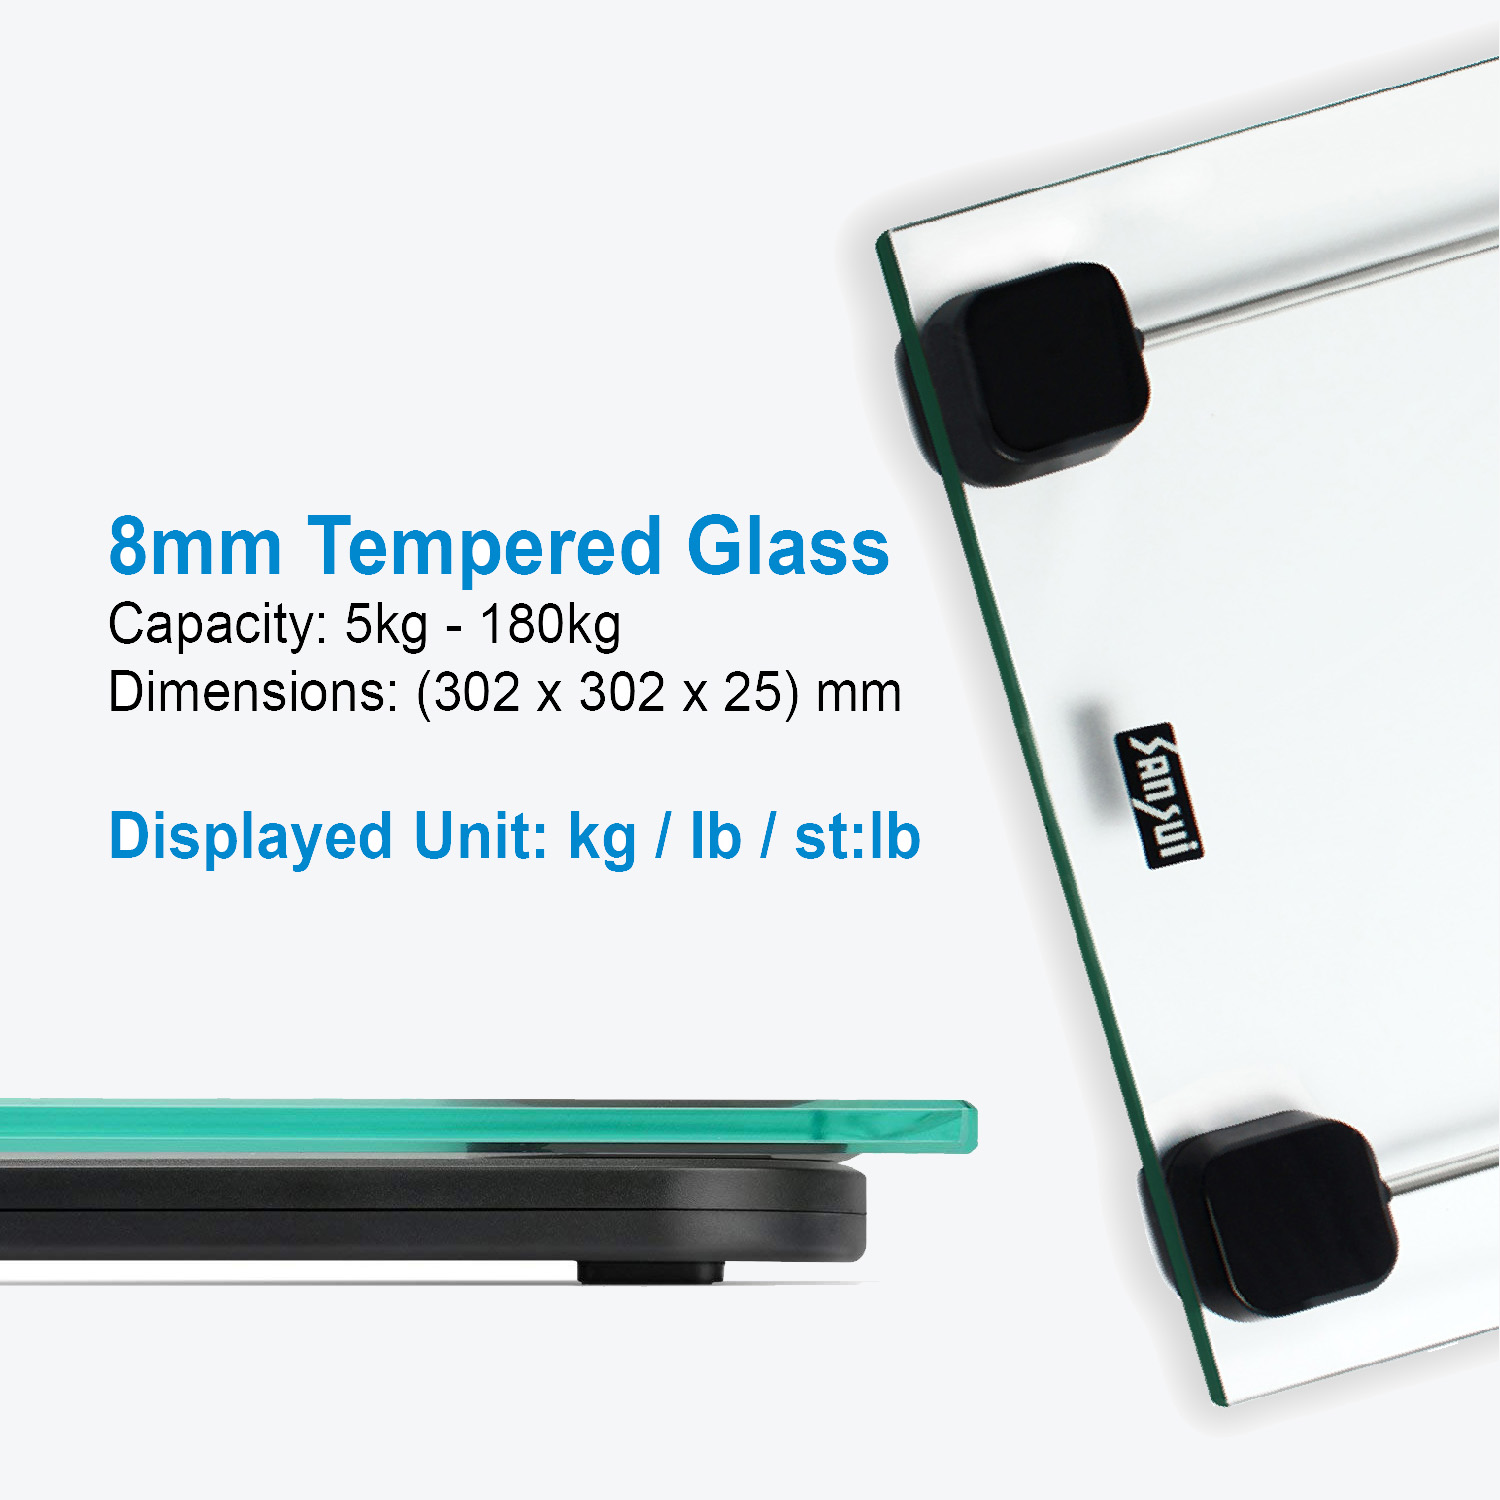 Sansui Personal Scale Transparent